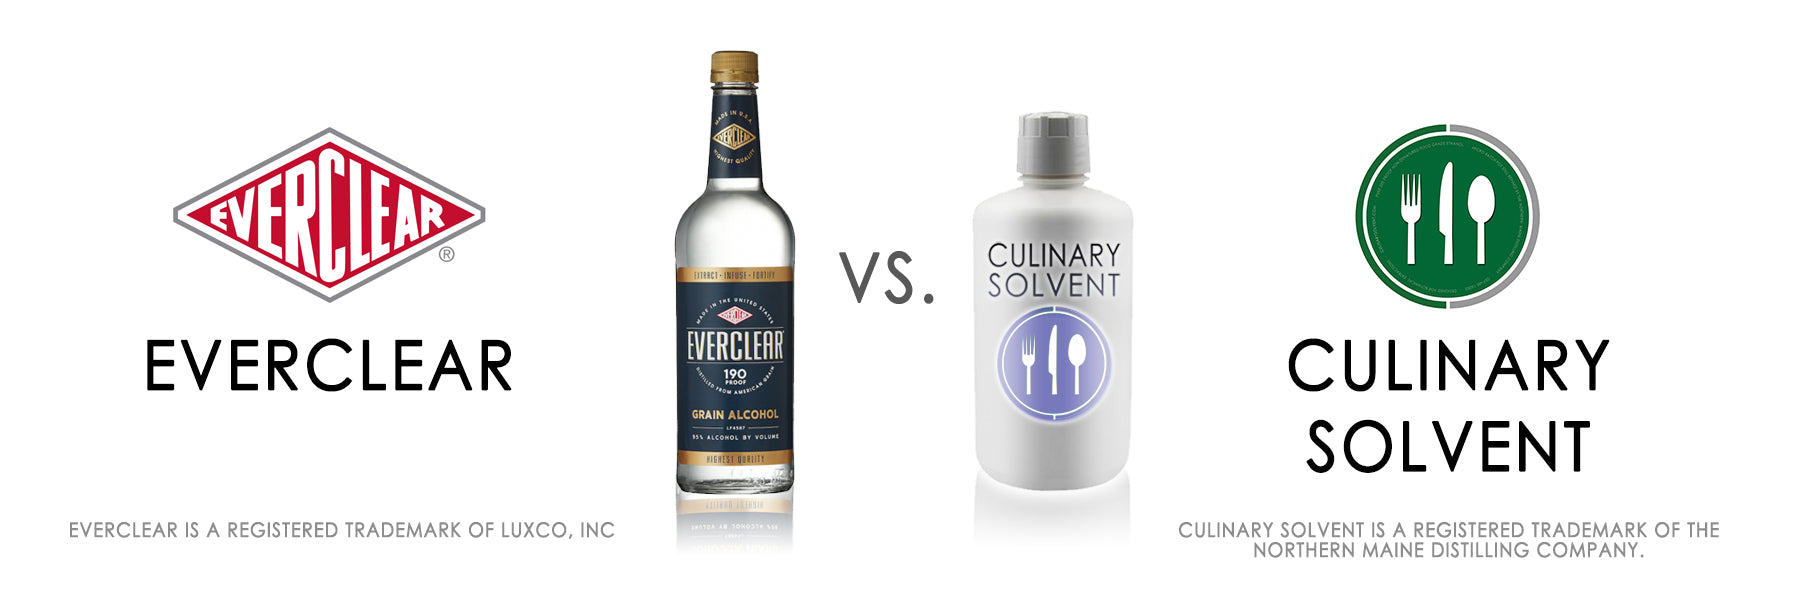 Everclear vs Culinary Solvent - Food grade ethanol.